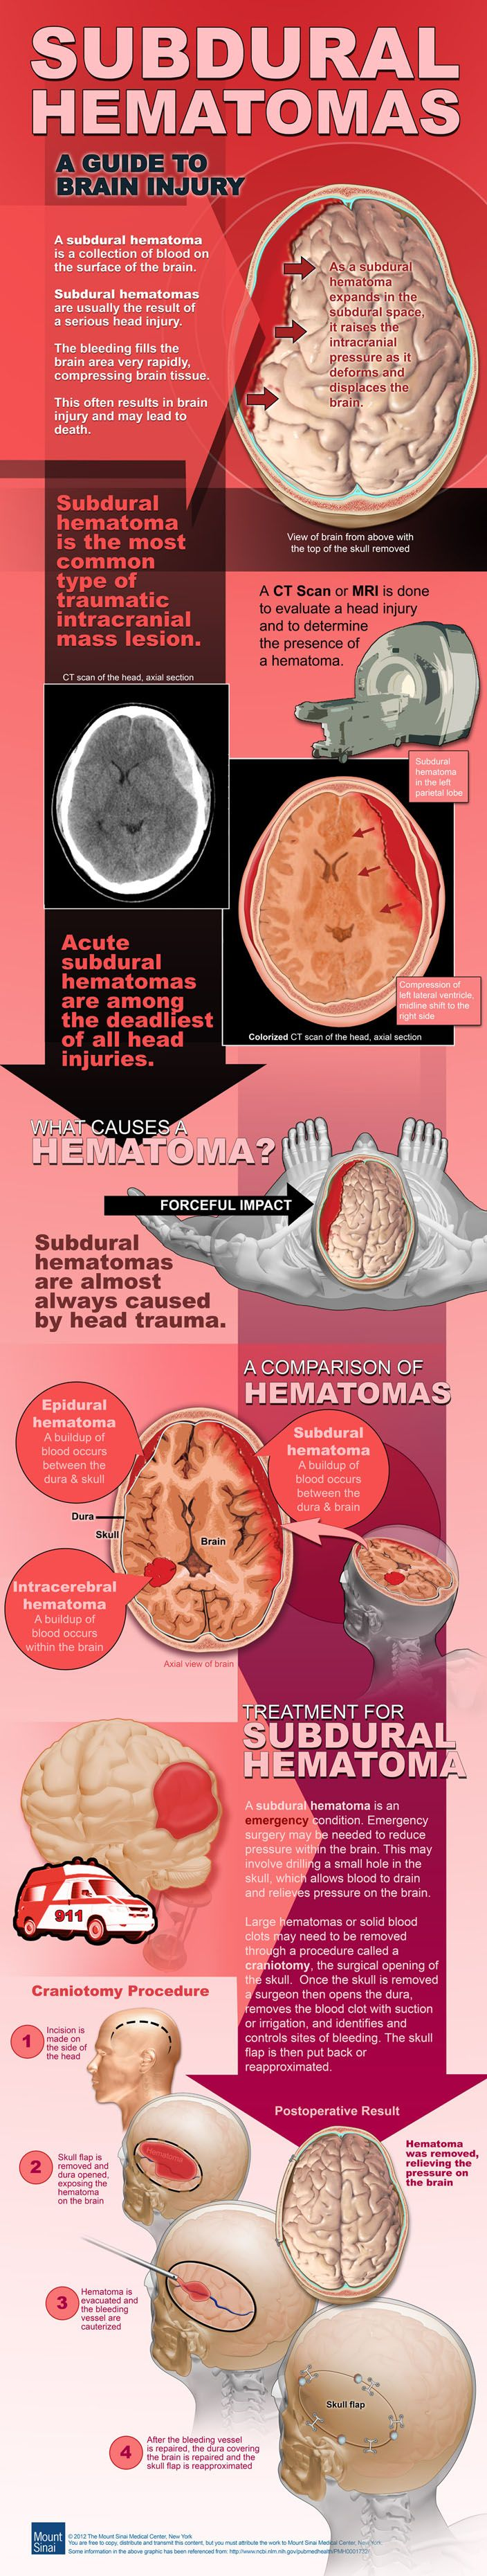 Subdural hematoma (SDH) is a collection of blood outside the brain, most often caused by traumatic head injury.